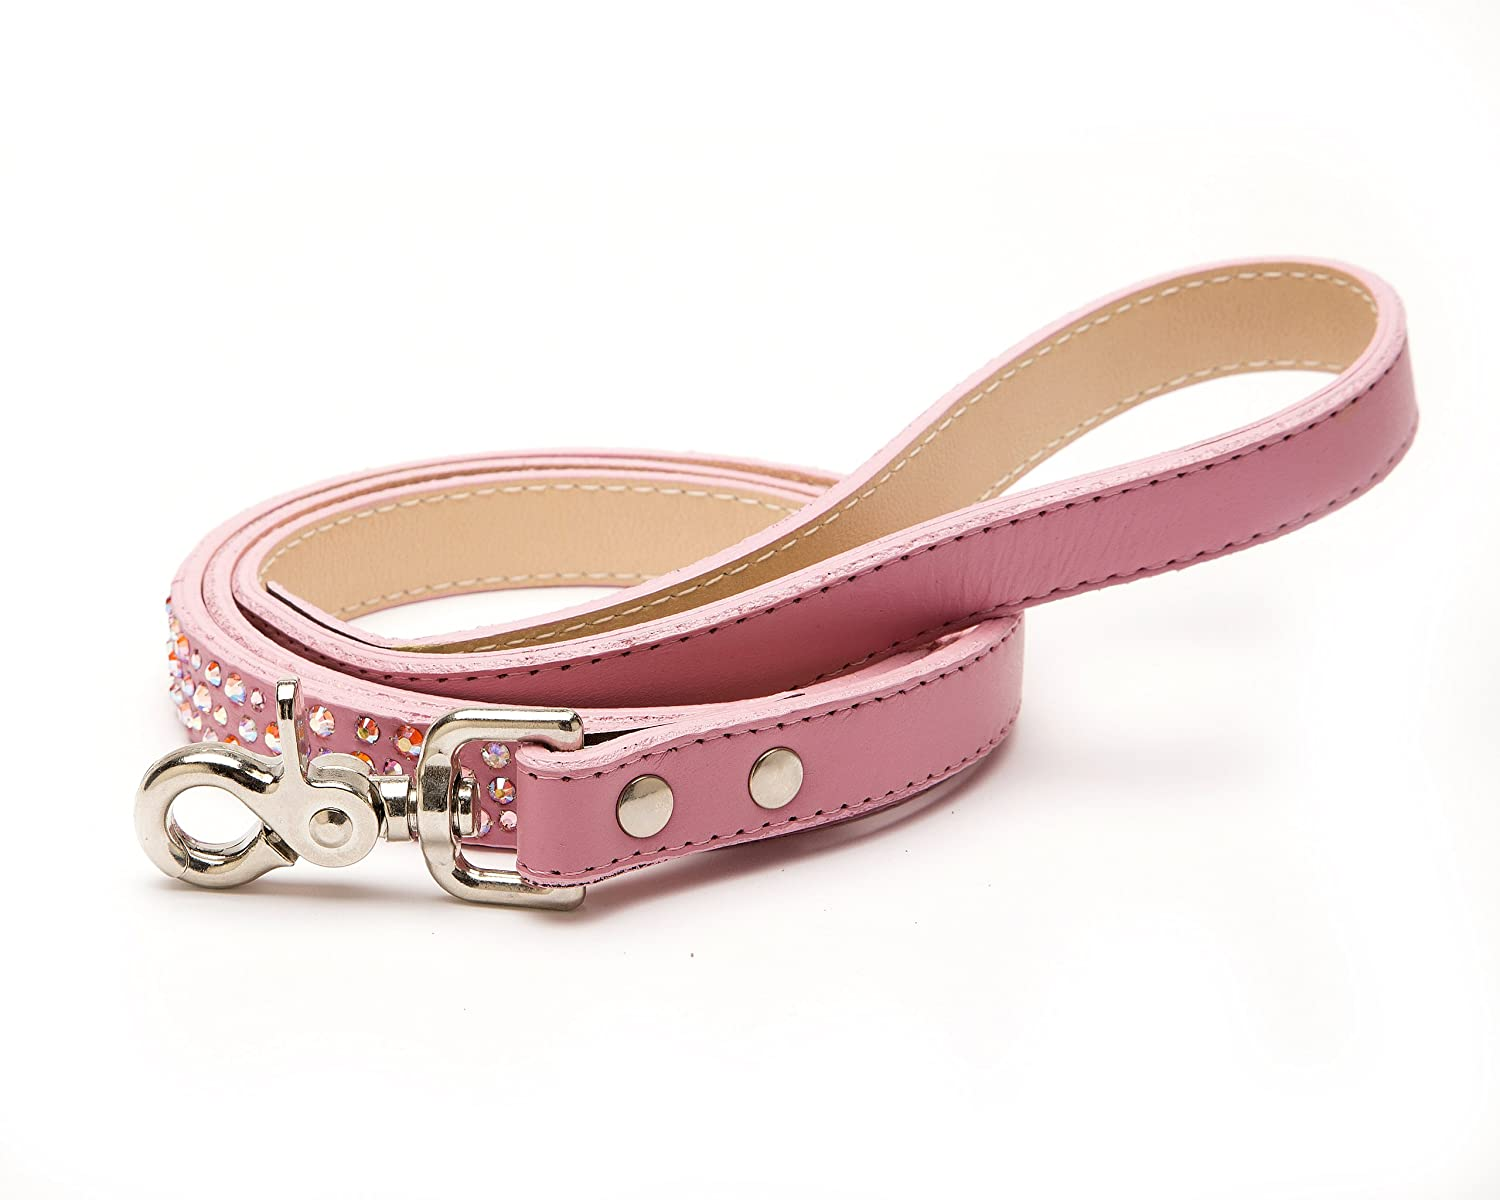 POOCHEE DESIGNS Domed Studs Leather Dog Leash, L4', W3 4 , Pink with Domed Studs